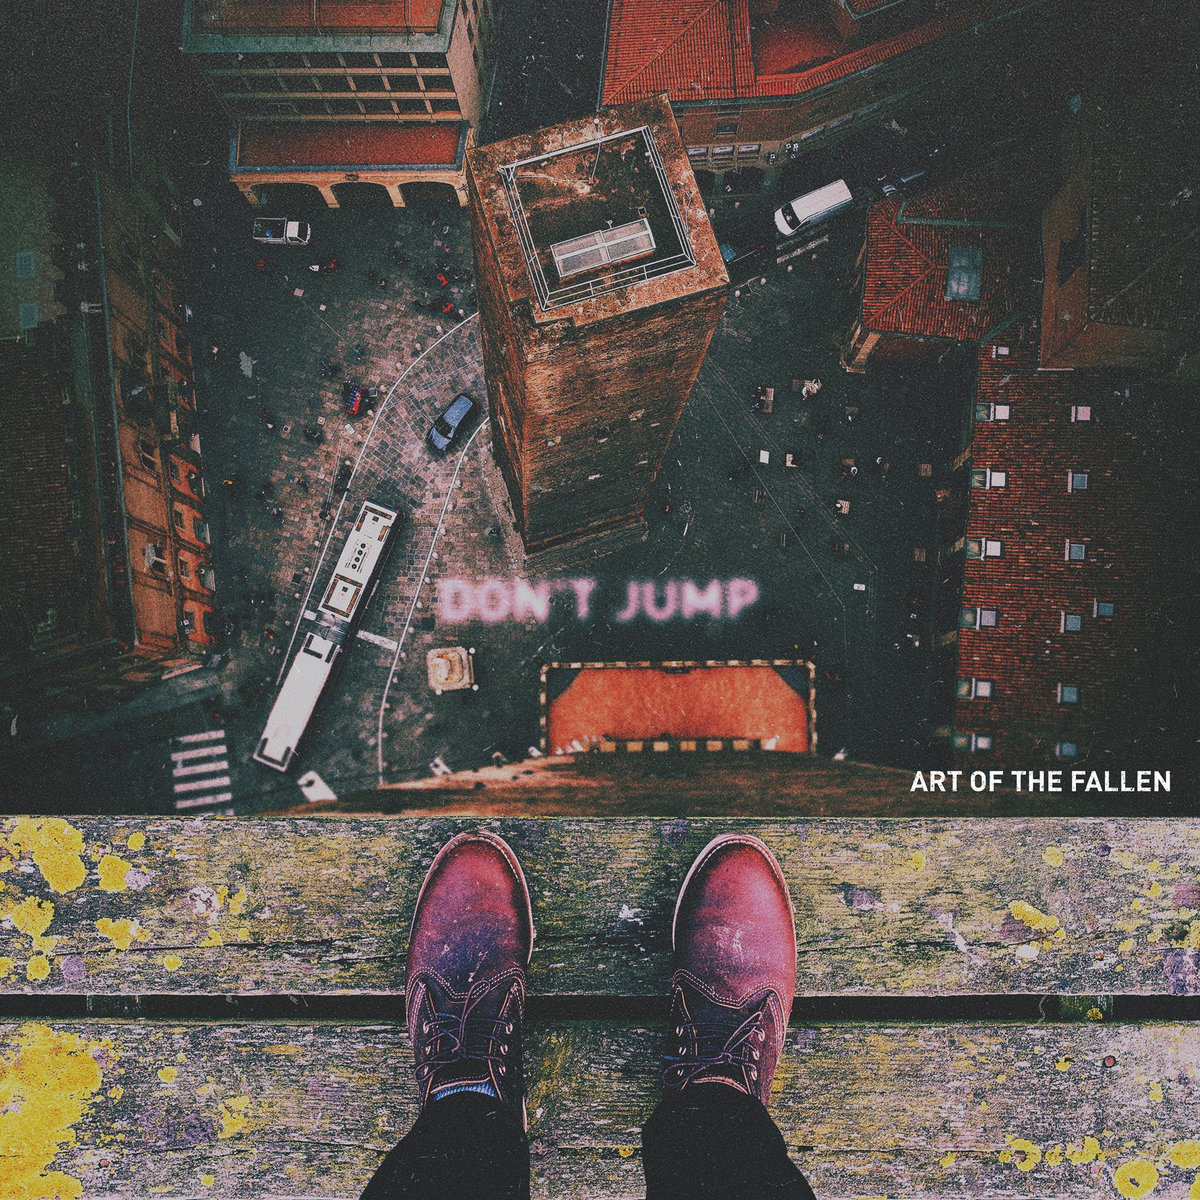 Art of the Fallen - Don't Jump [EP] (2018)